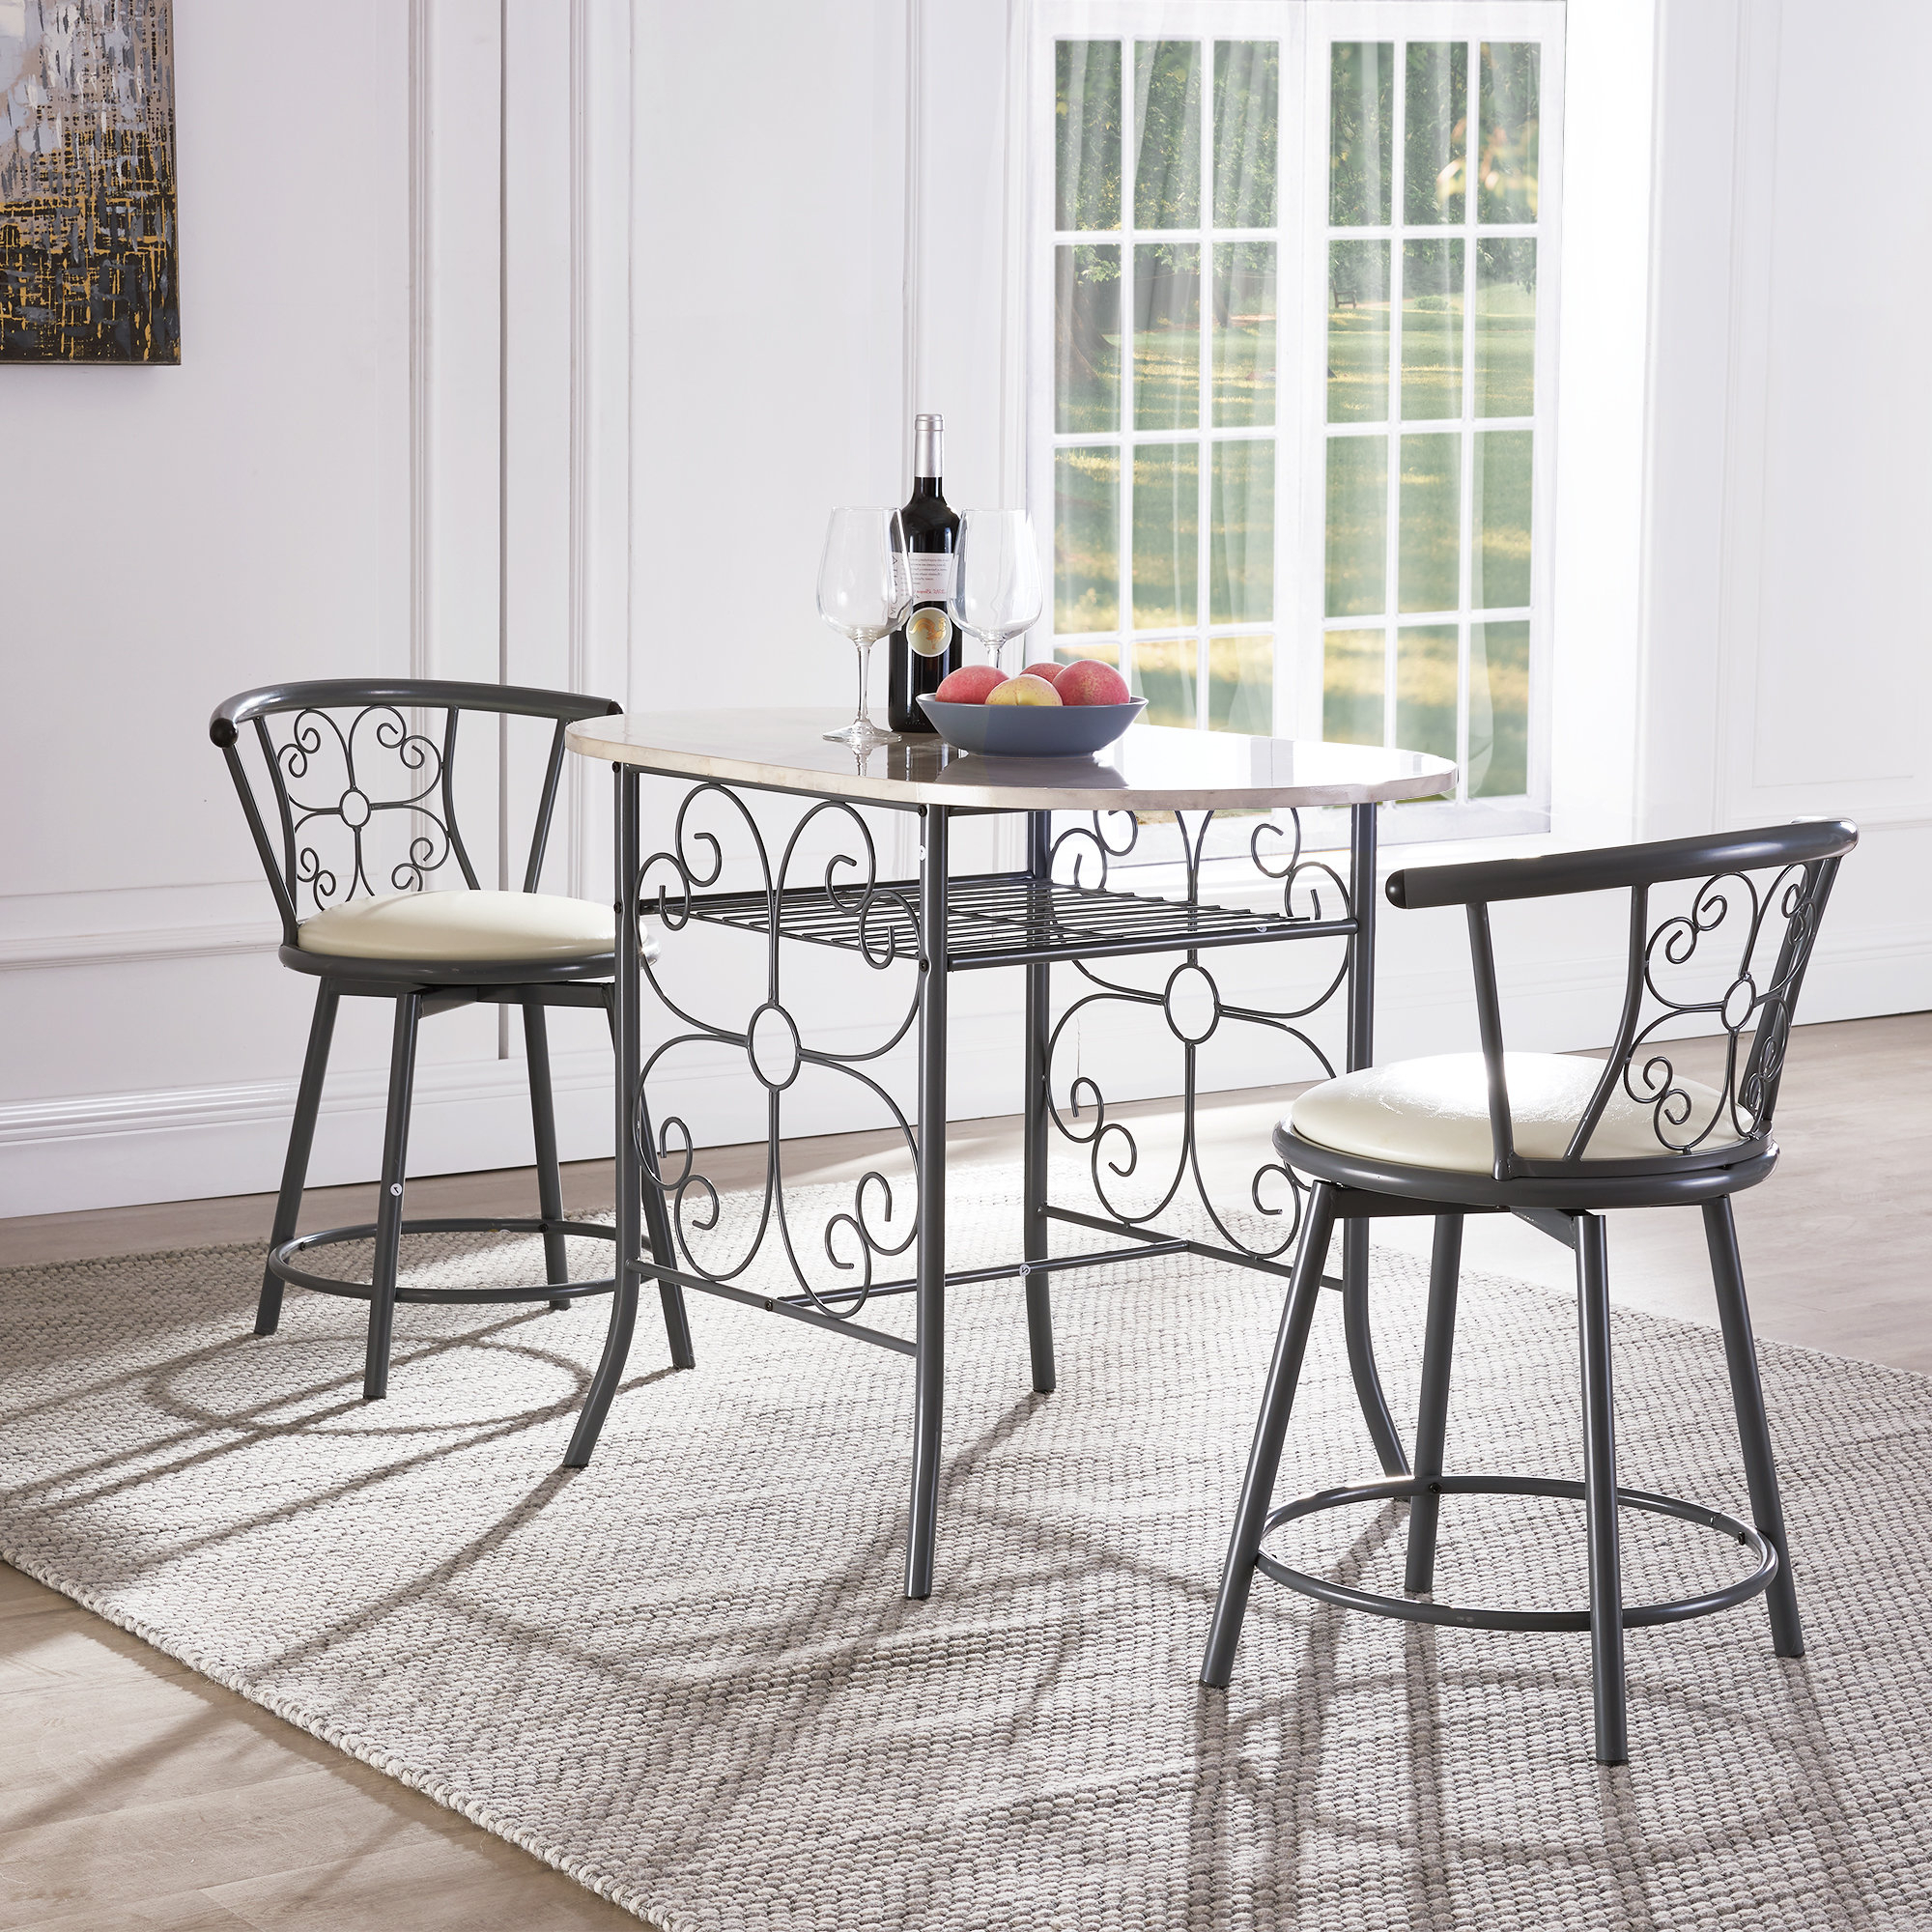 Fleur De Lis Living Askerby Scroll Design Bistro 3 Piece Dining Set Throughout Fashionable Tappahannock 3 Piece Counter Height Dining Sets (View 10 of 25)